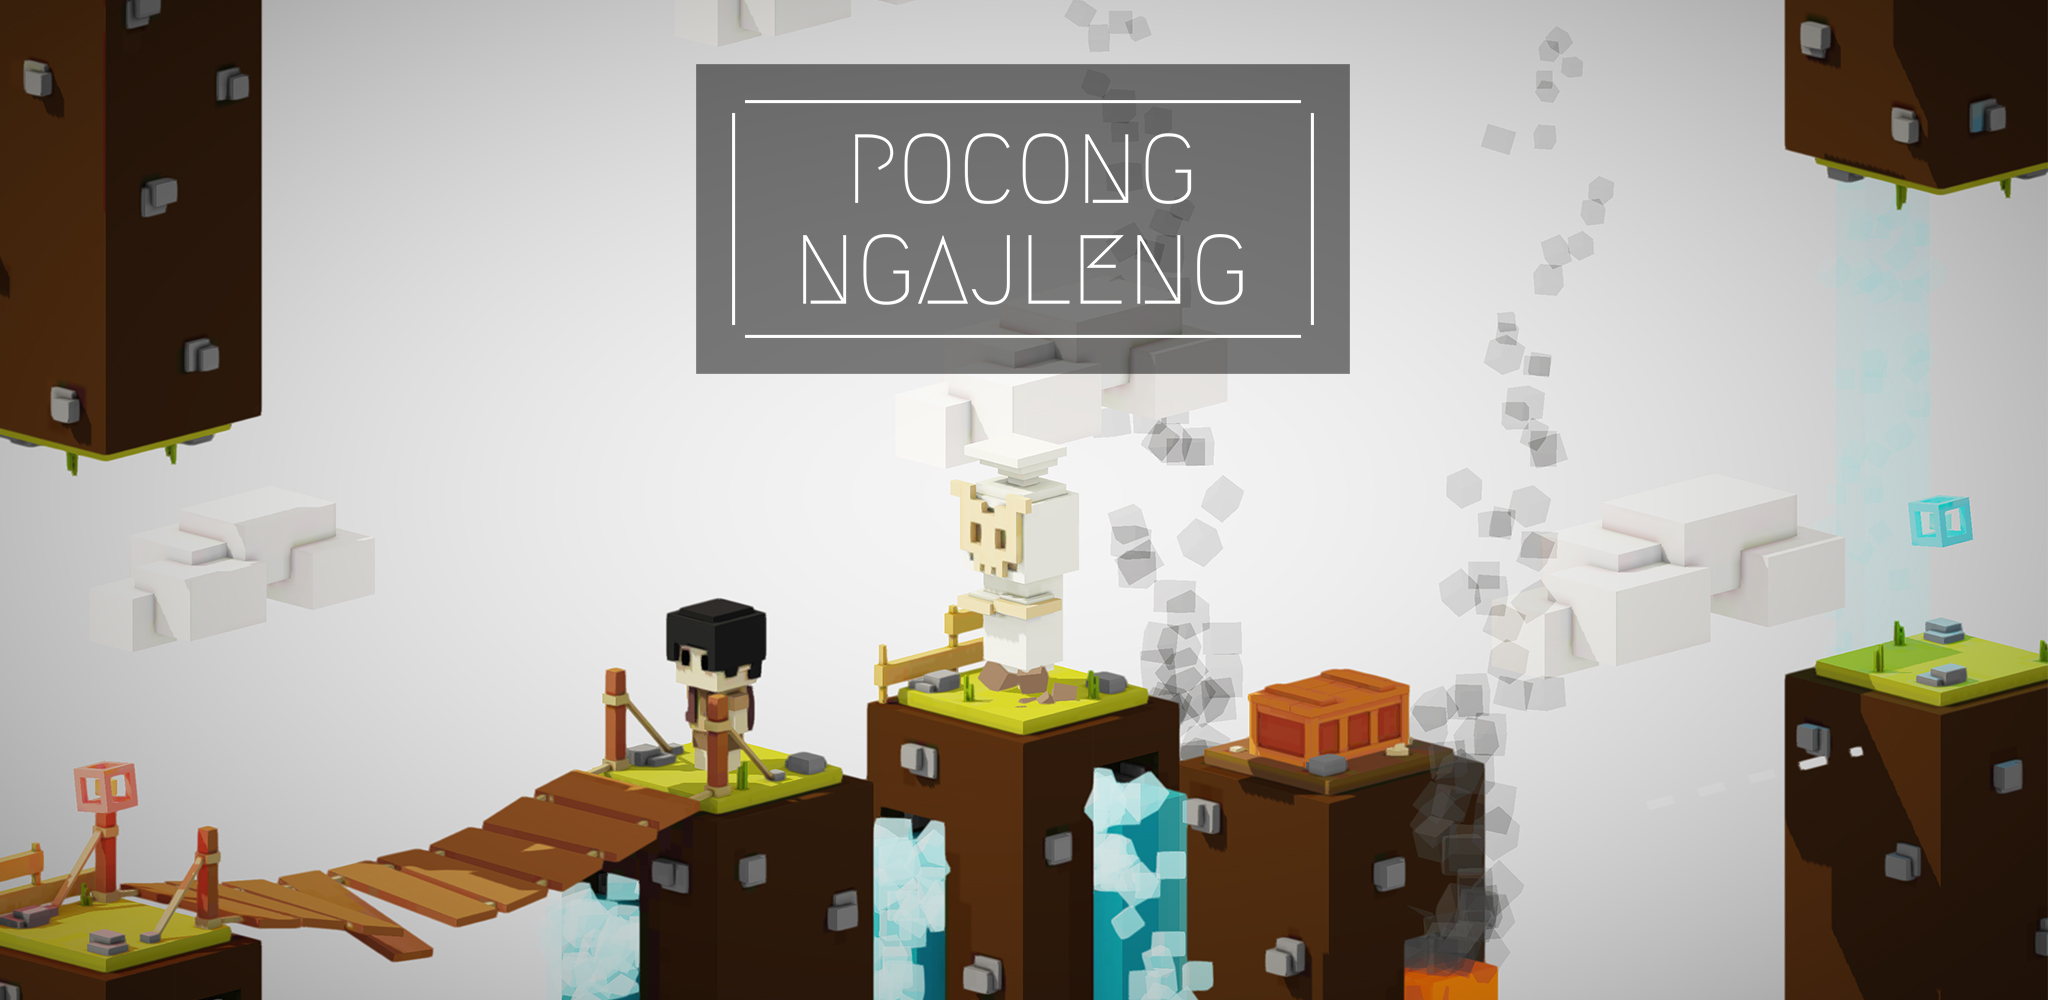 Pocong Ngajleng: Ghost Who Like to Jump!